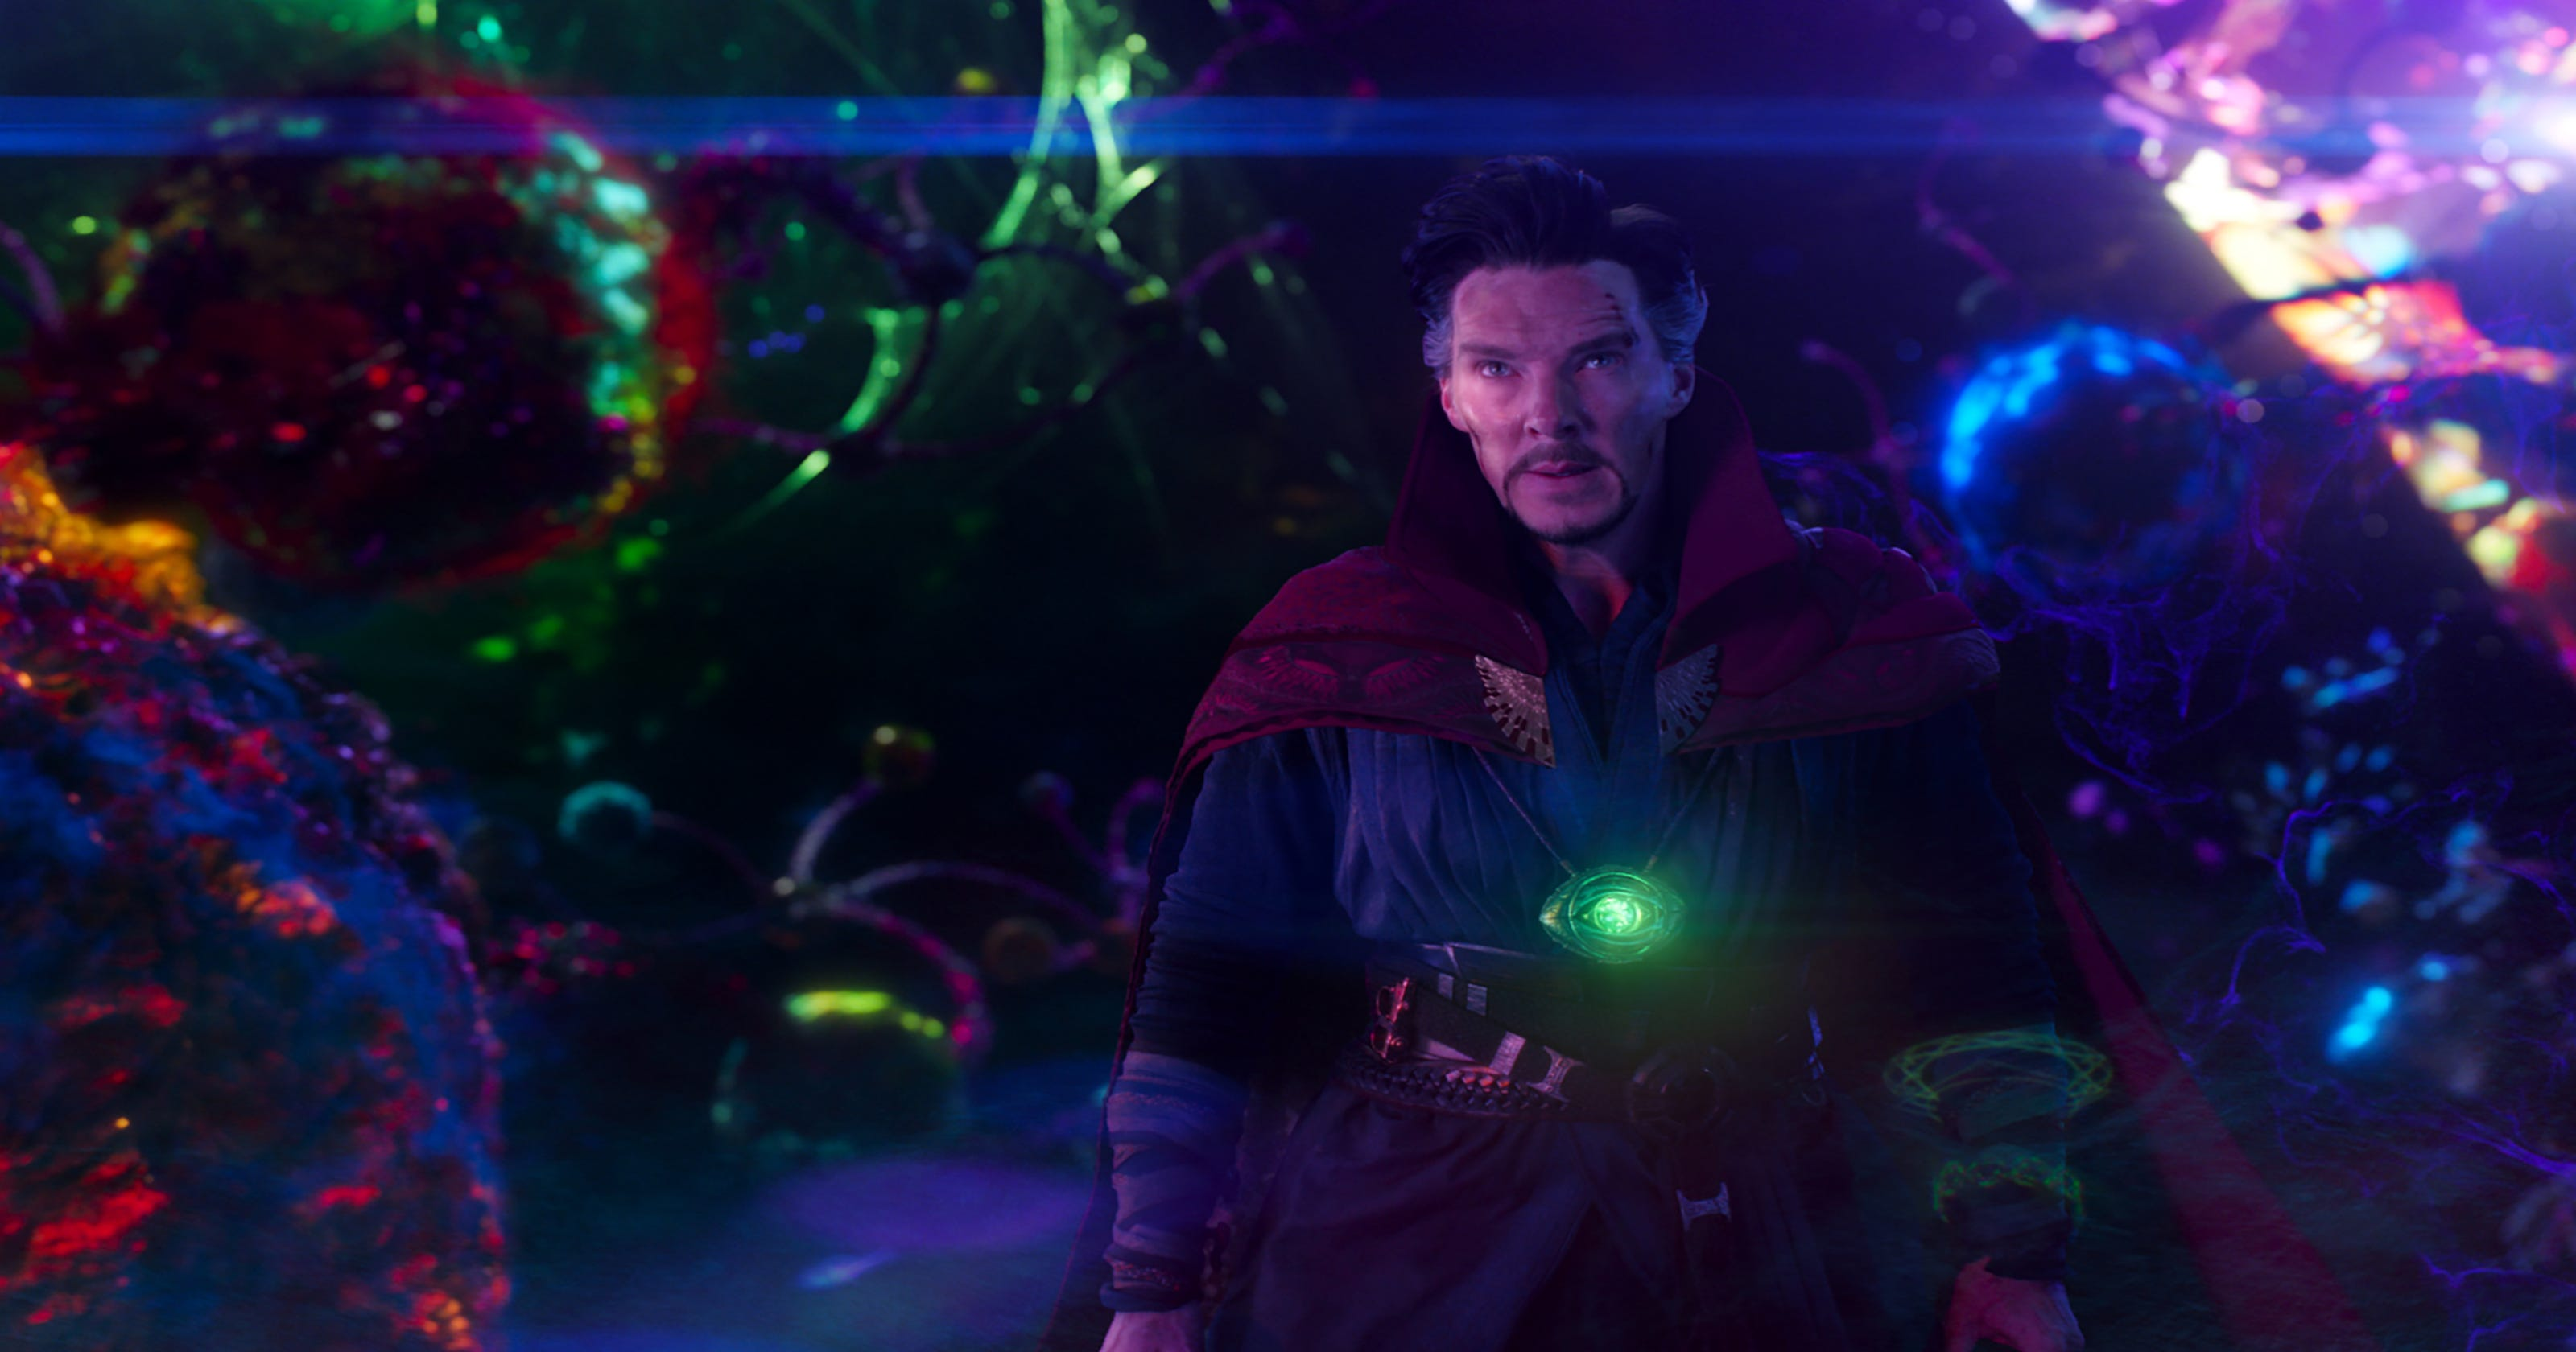 Resultado de imagem para doctor strange manipulating magic movie